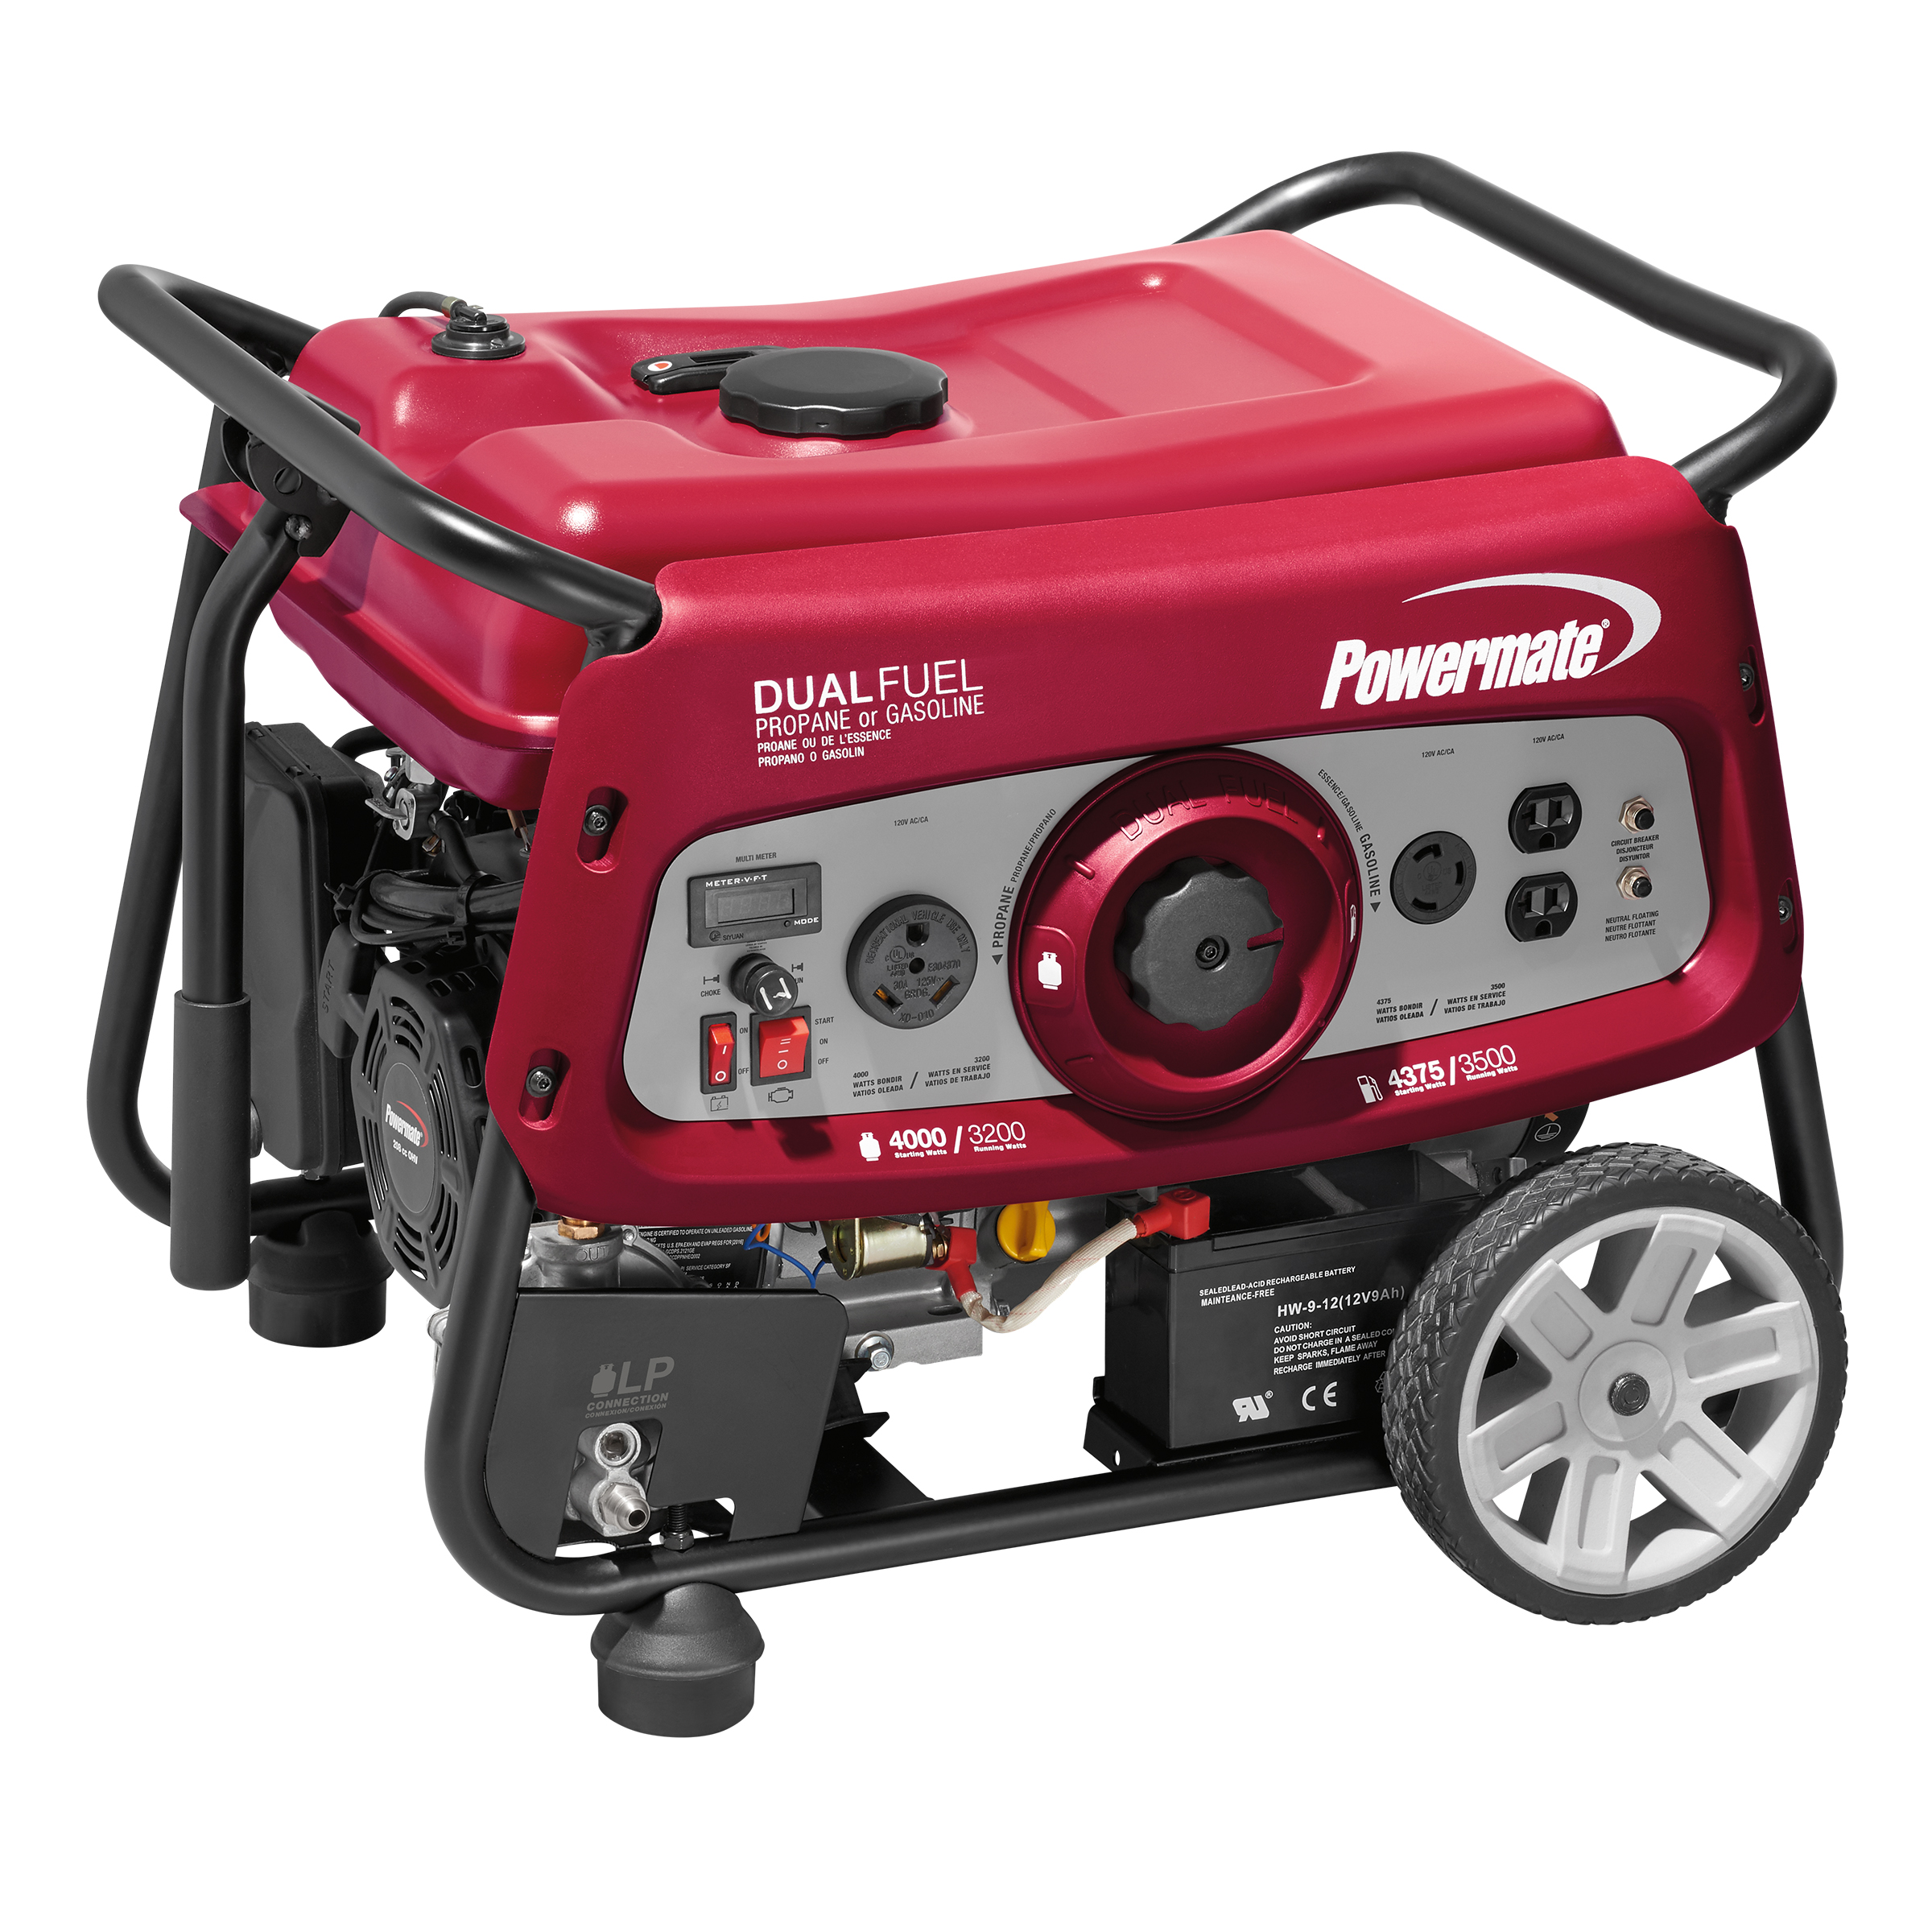 Powermate 6957 Portable Generator, 3500-Watts